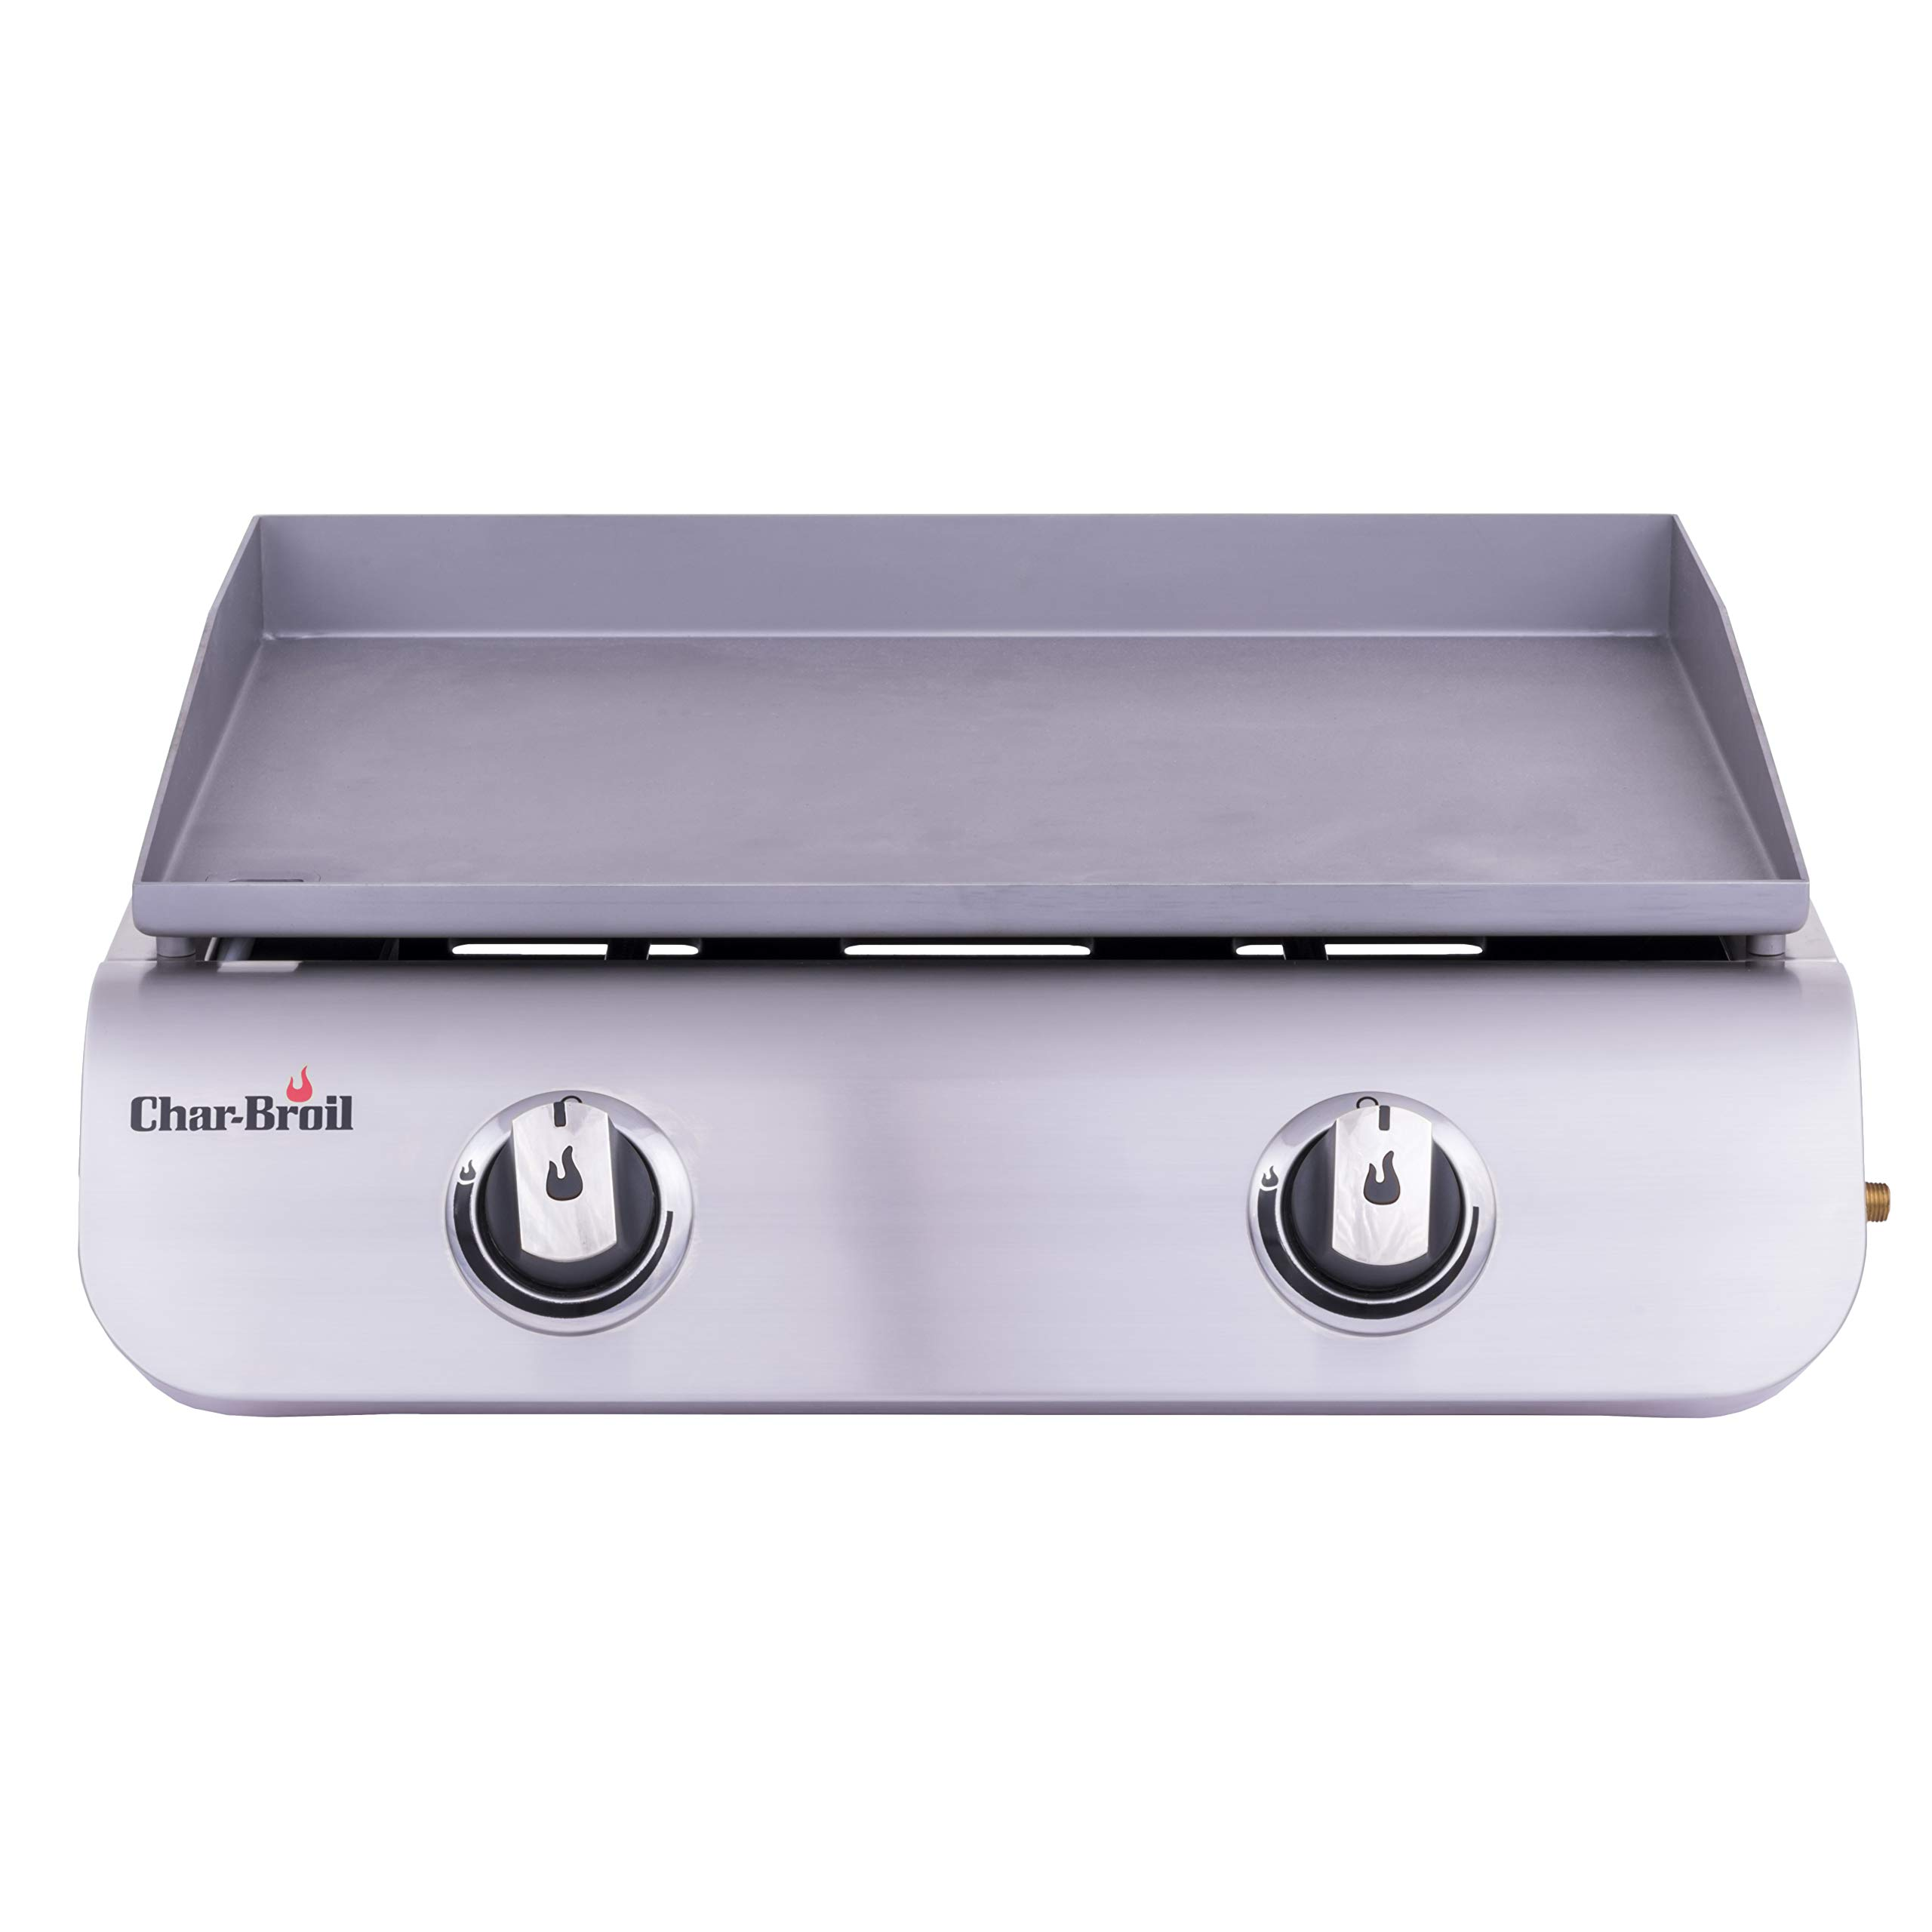 Char-Broil 19952085 22-inch 2-Burner Tabletop Gas Griddle, Gray by Char-Broil